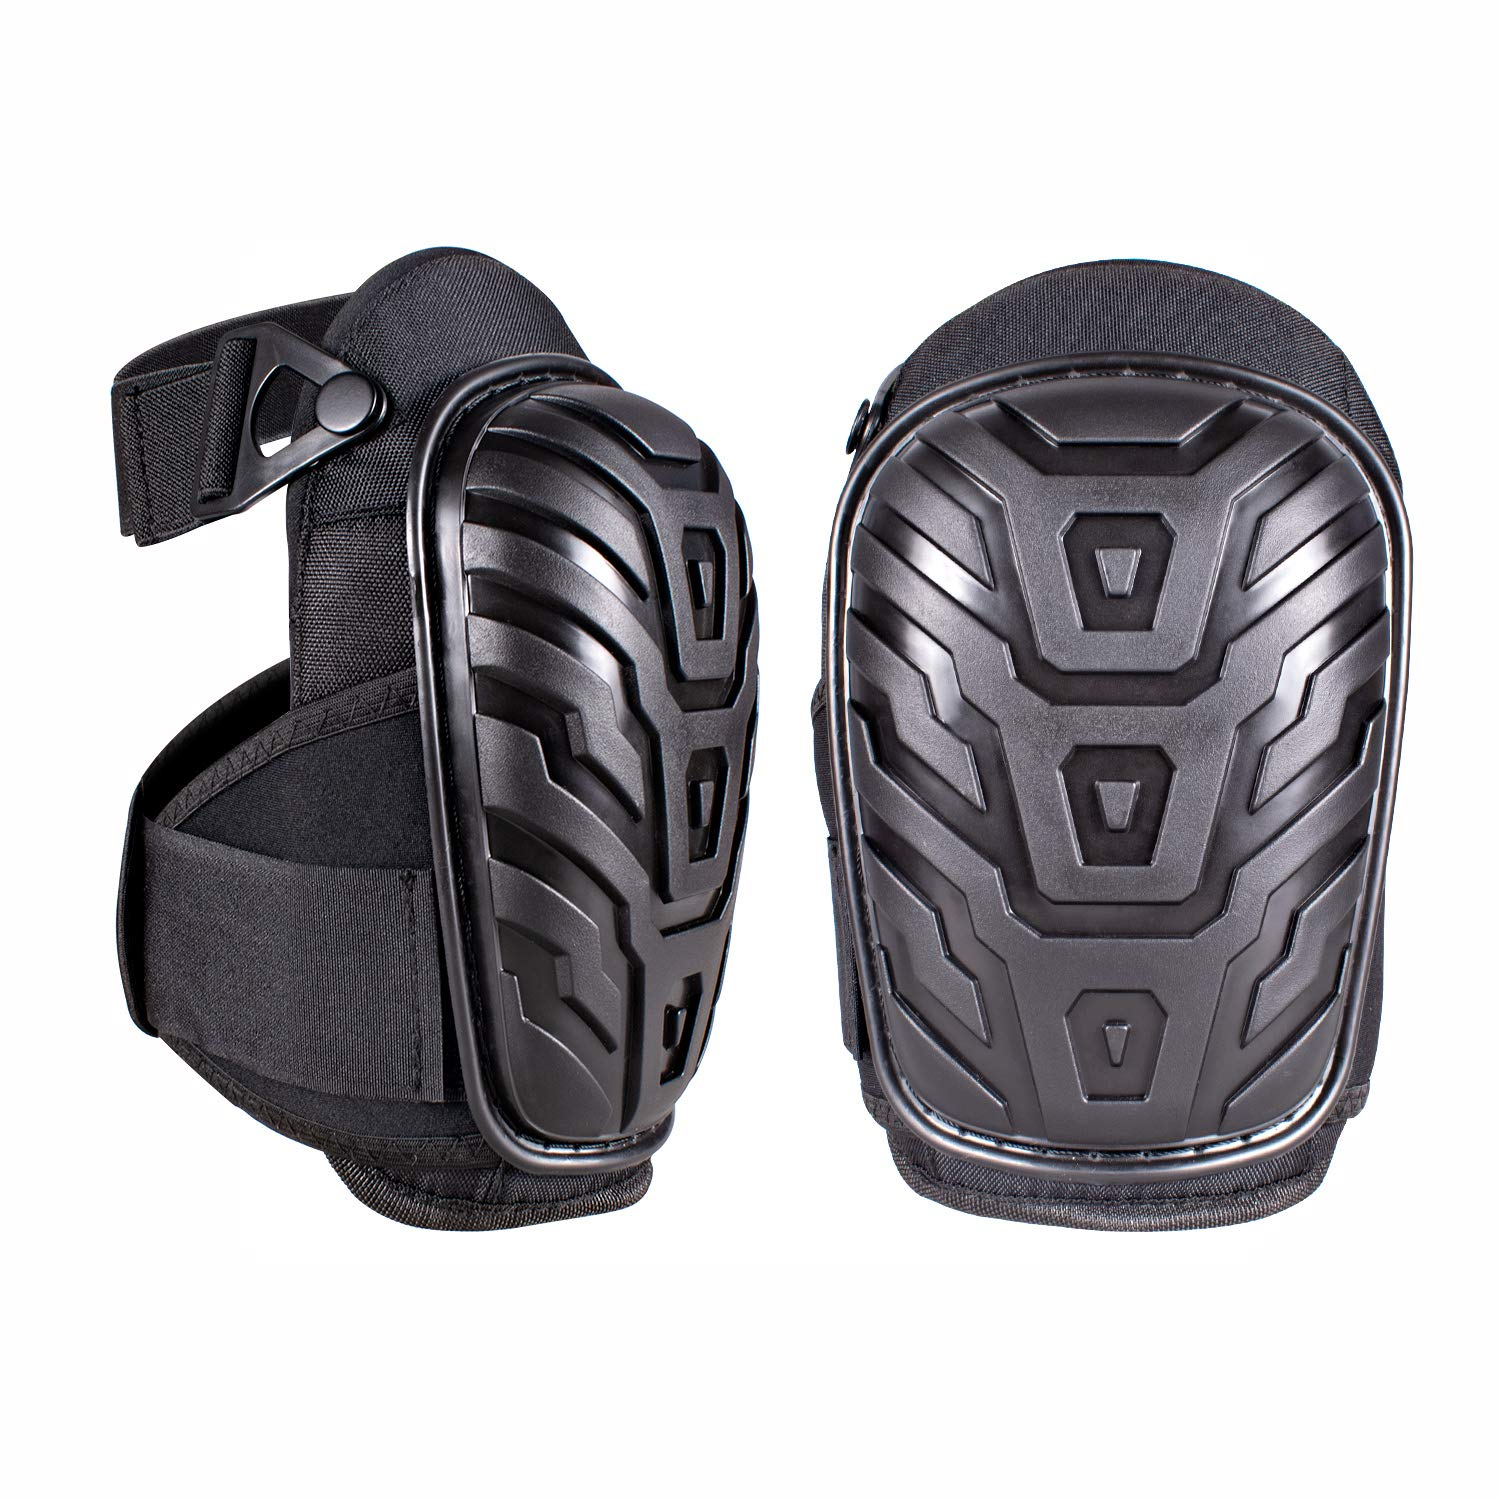 Professional Knee Pads for Work with Heavy Duty Foam Padding and Comfortable Gel Cushion Strong Double Adjustable Non-Slip Straps Great for Construction Gardening Flooring Cleaning ...